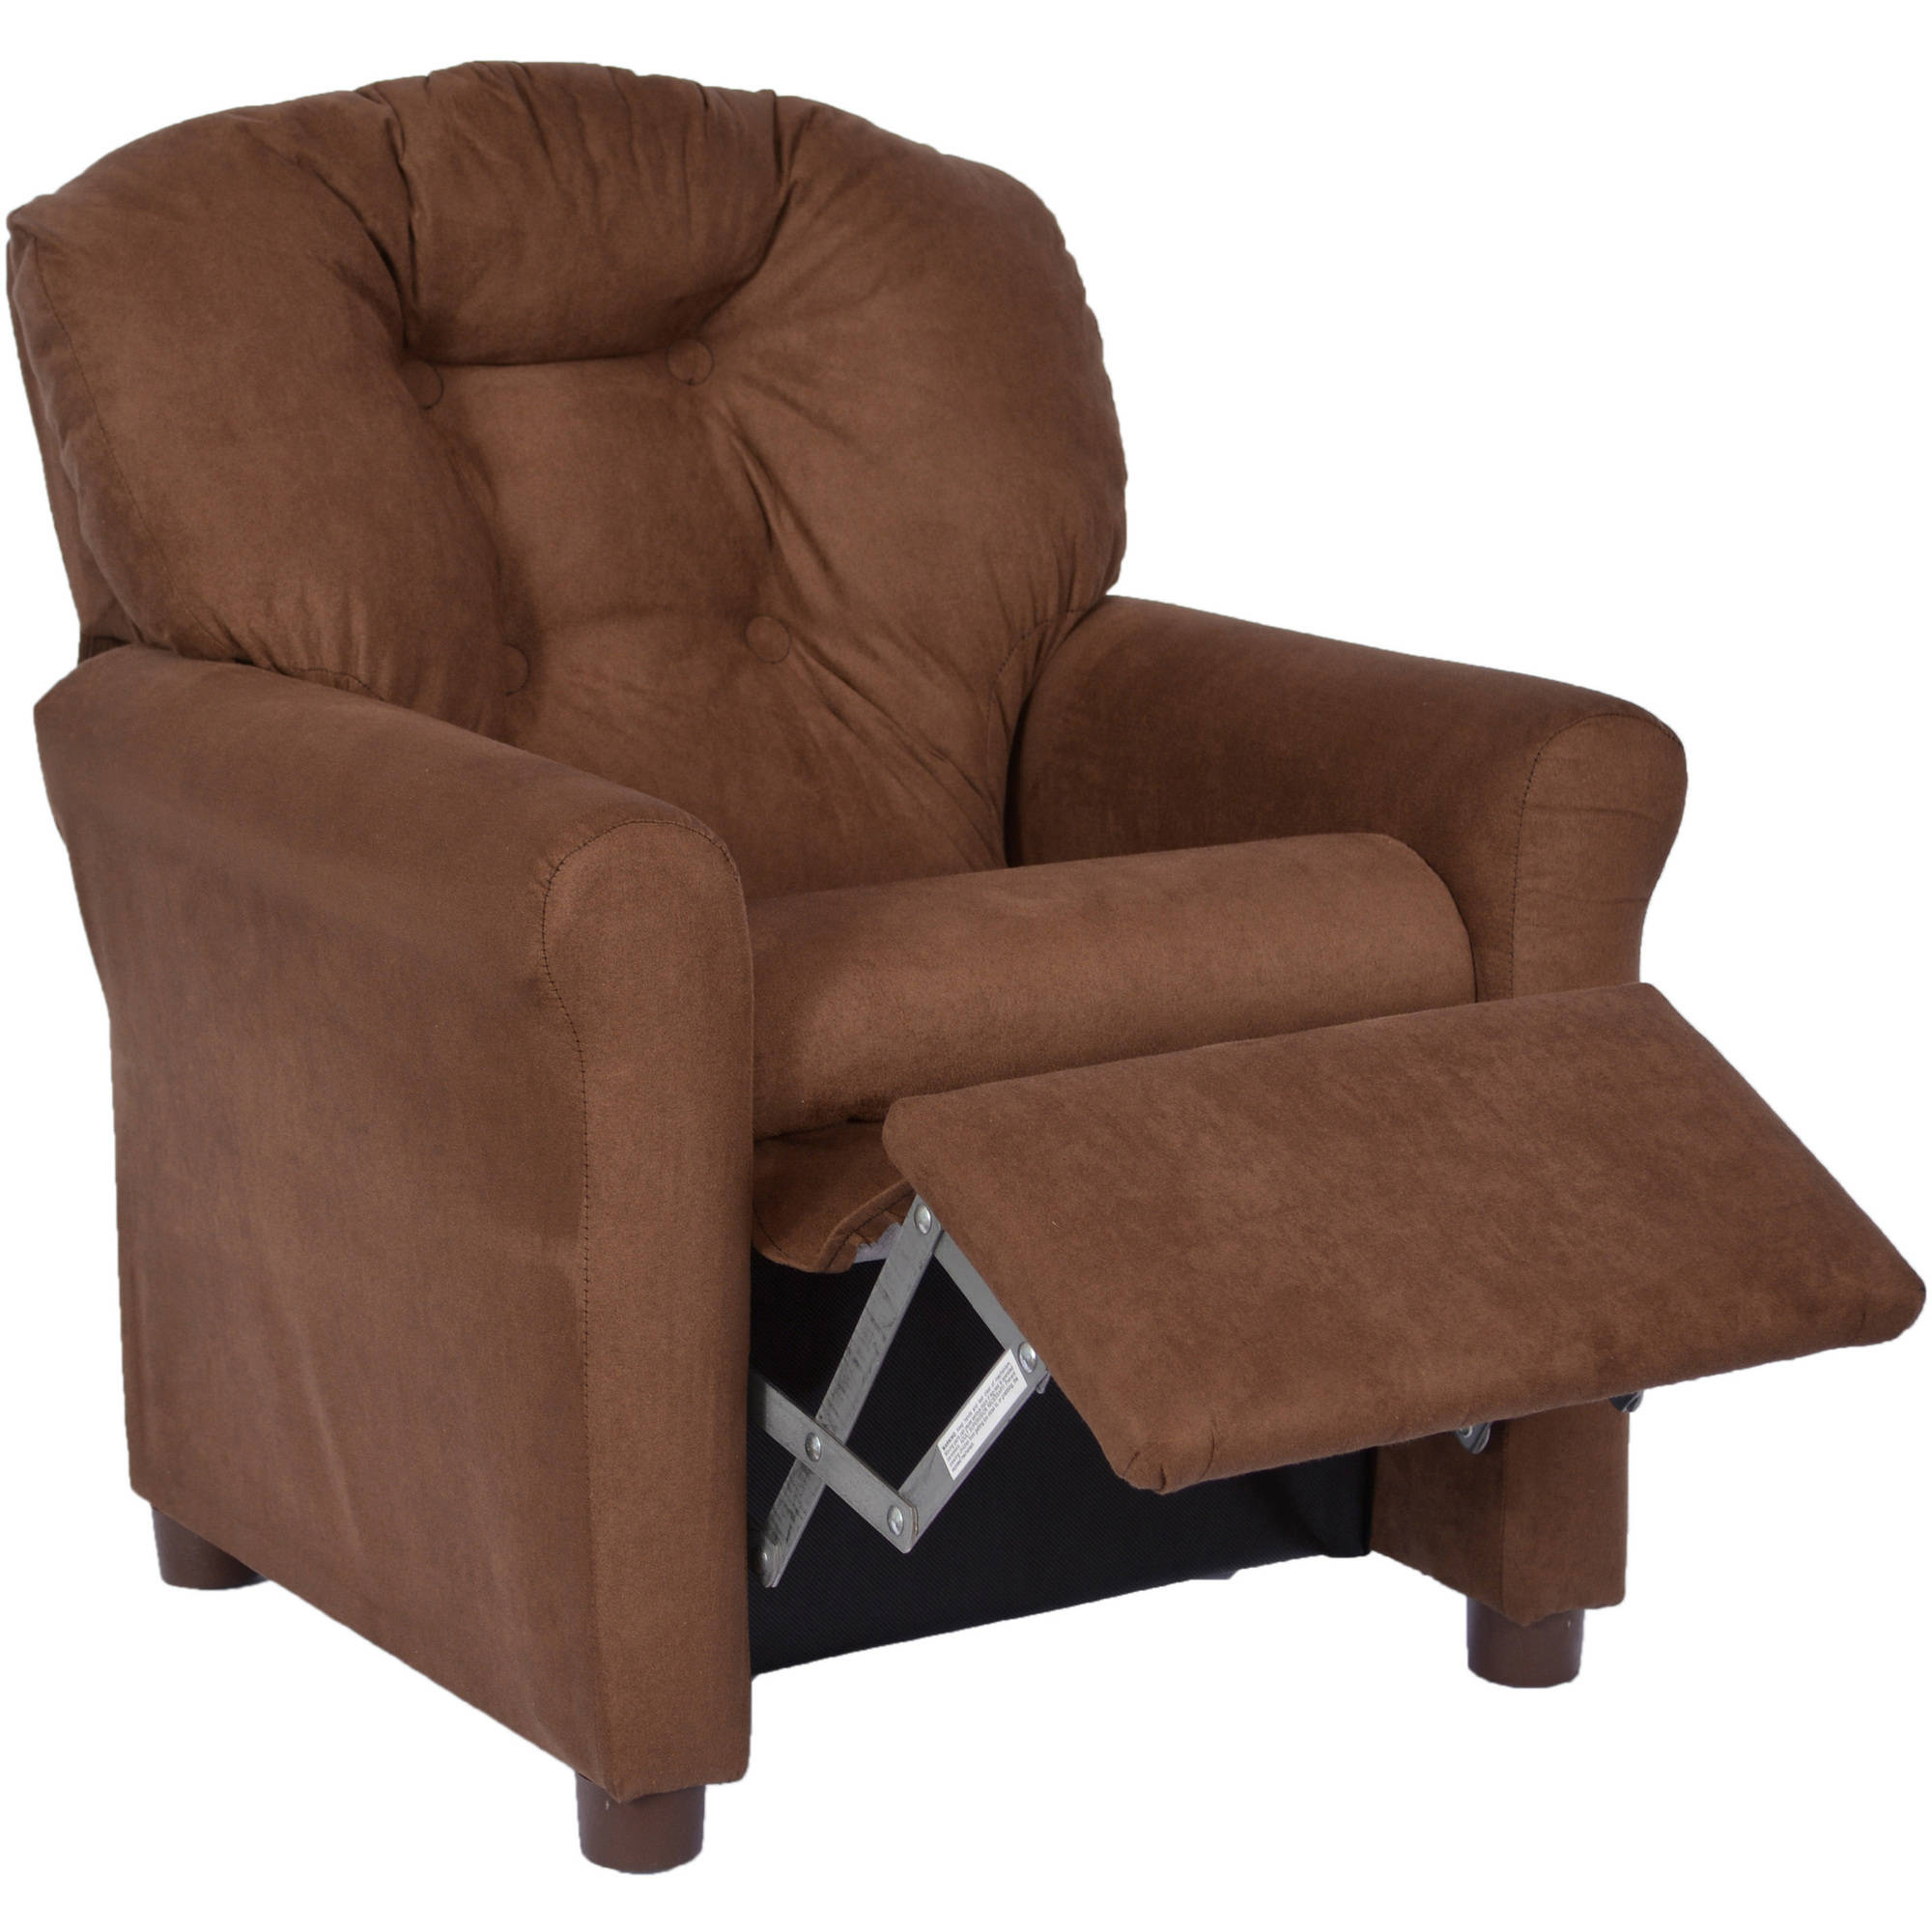 Club chair recliner - Crew Furniture Traditional Child Recliner Available In Multiple Colors Walmart Com